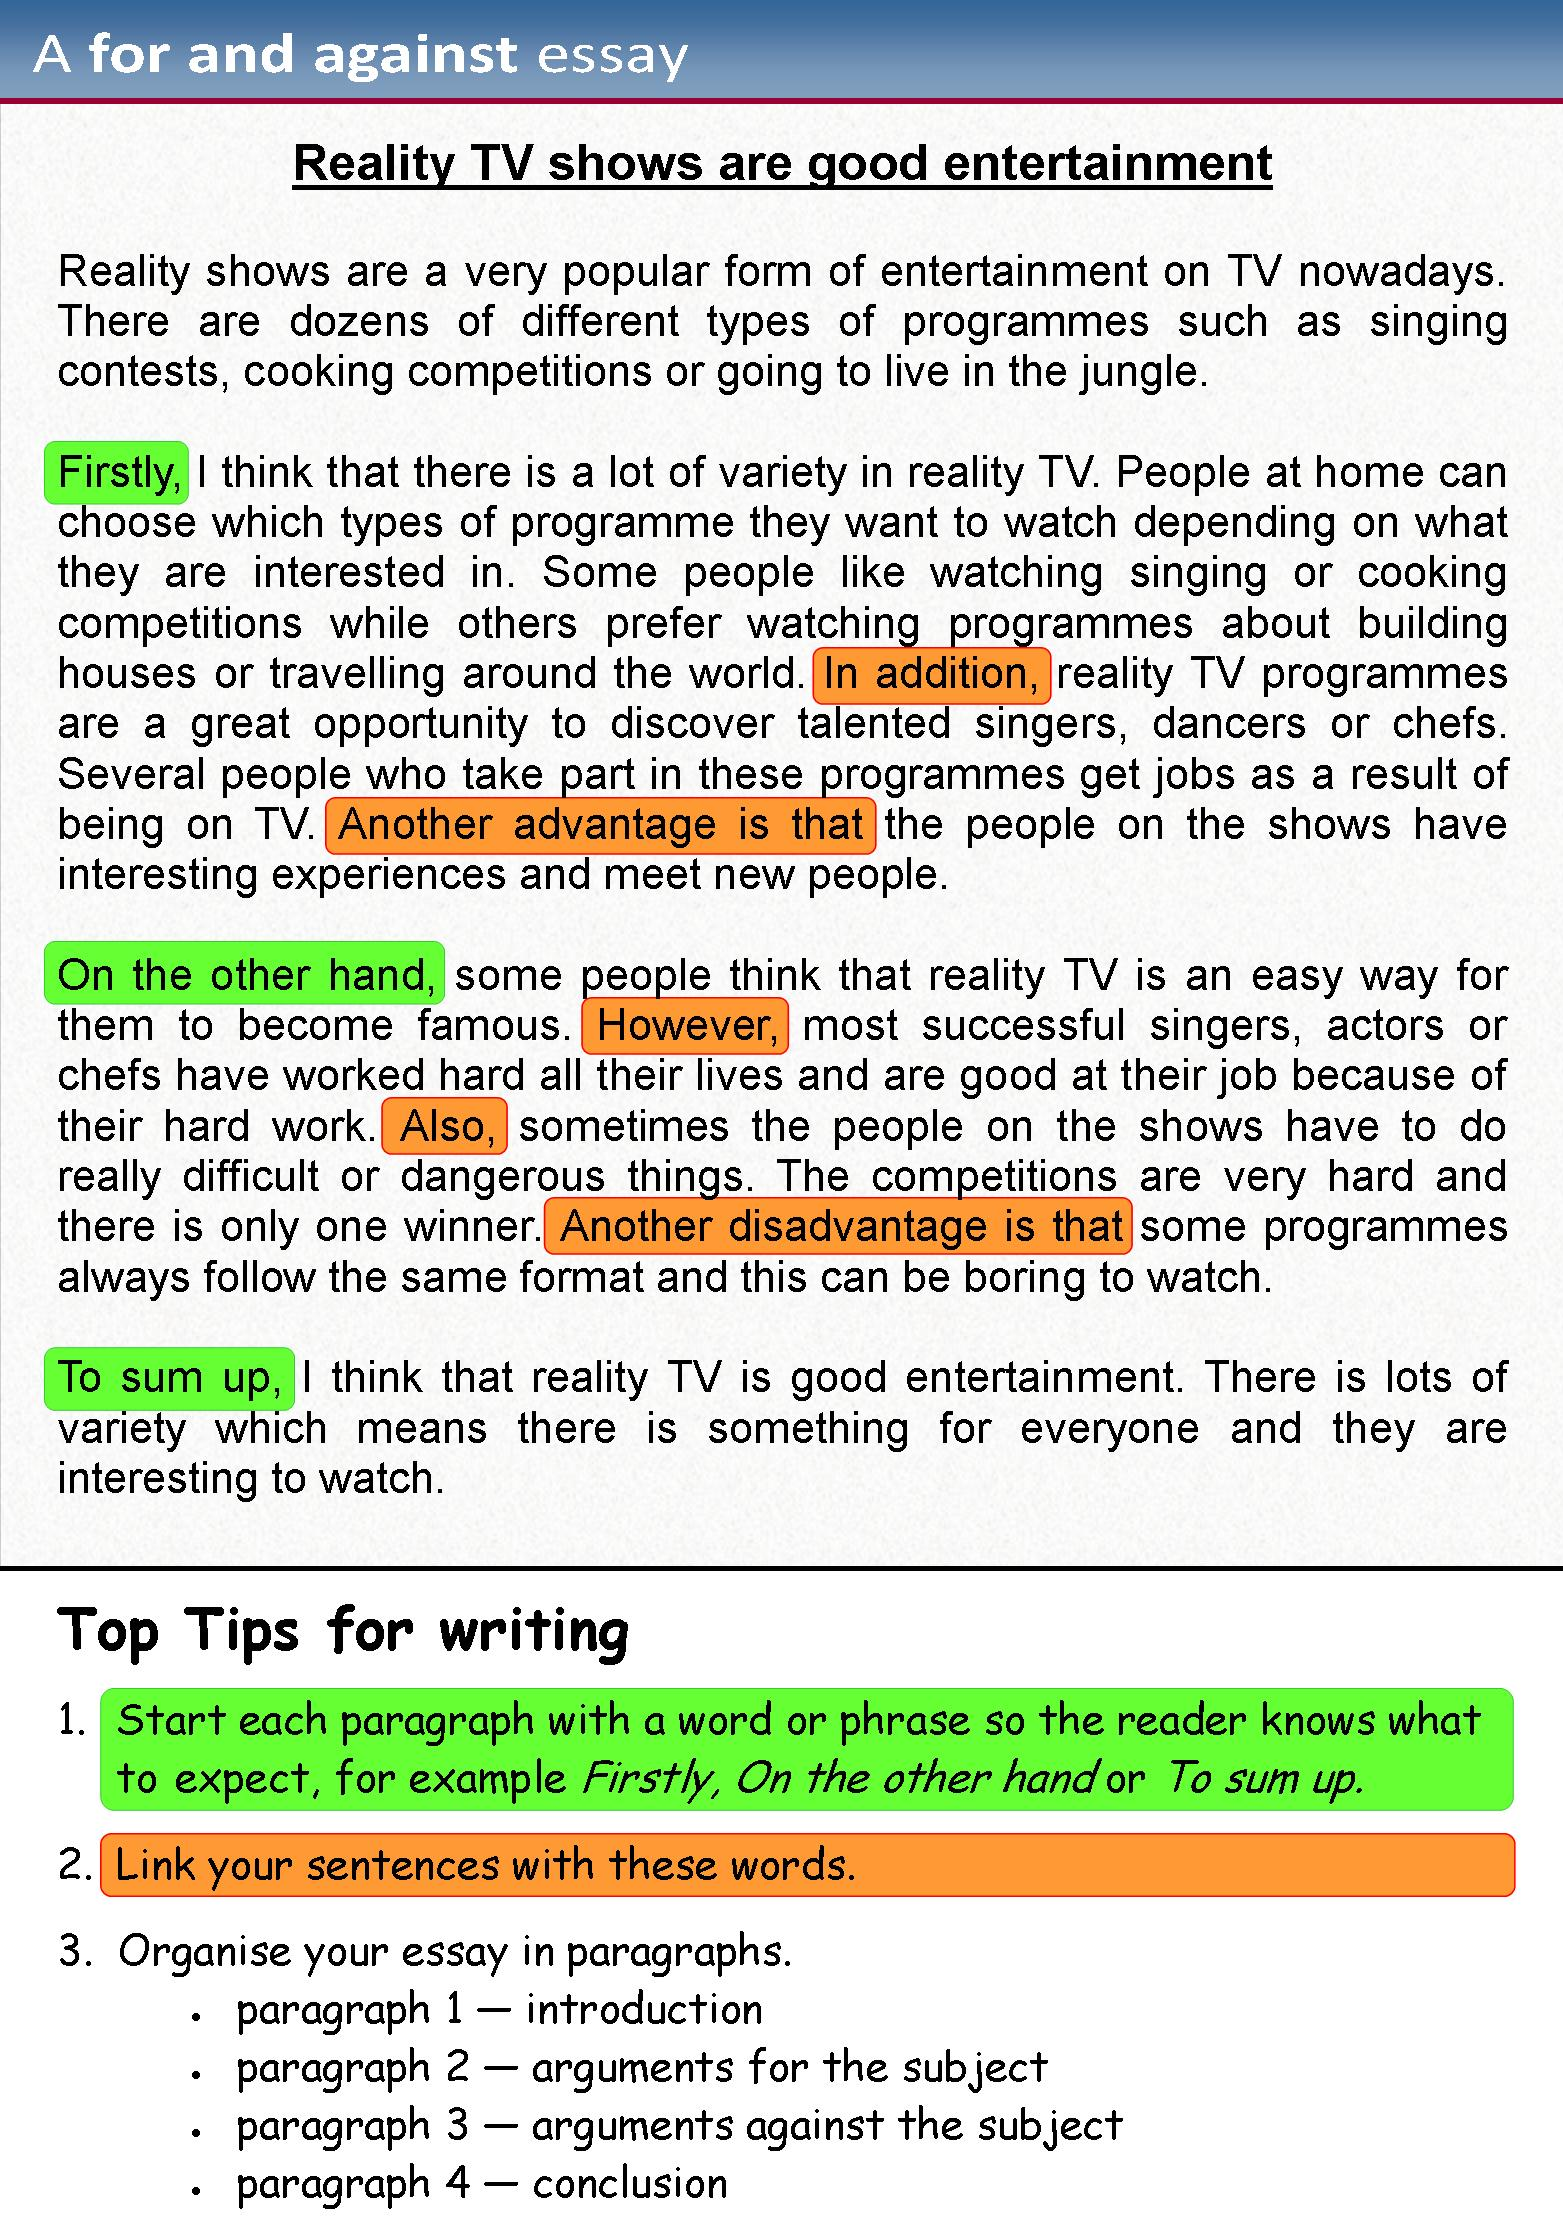 019 Essay Example How To Write And For Against 1 Unique An Conclusion University Level Outline College Placement Test Full